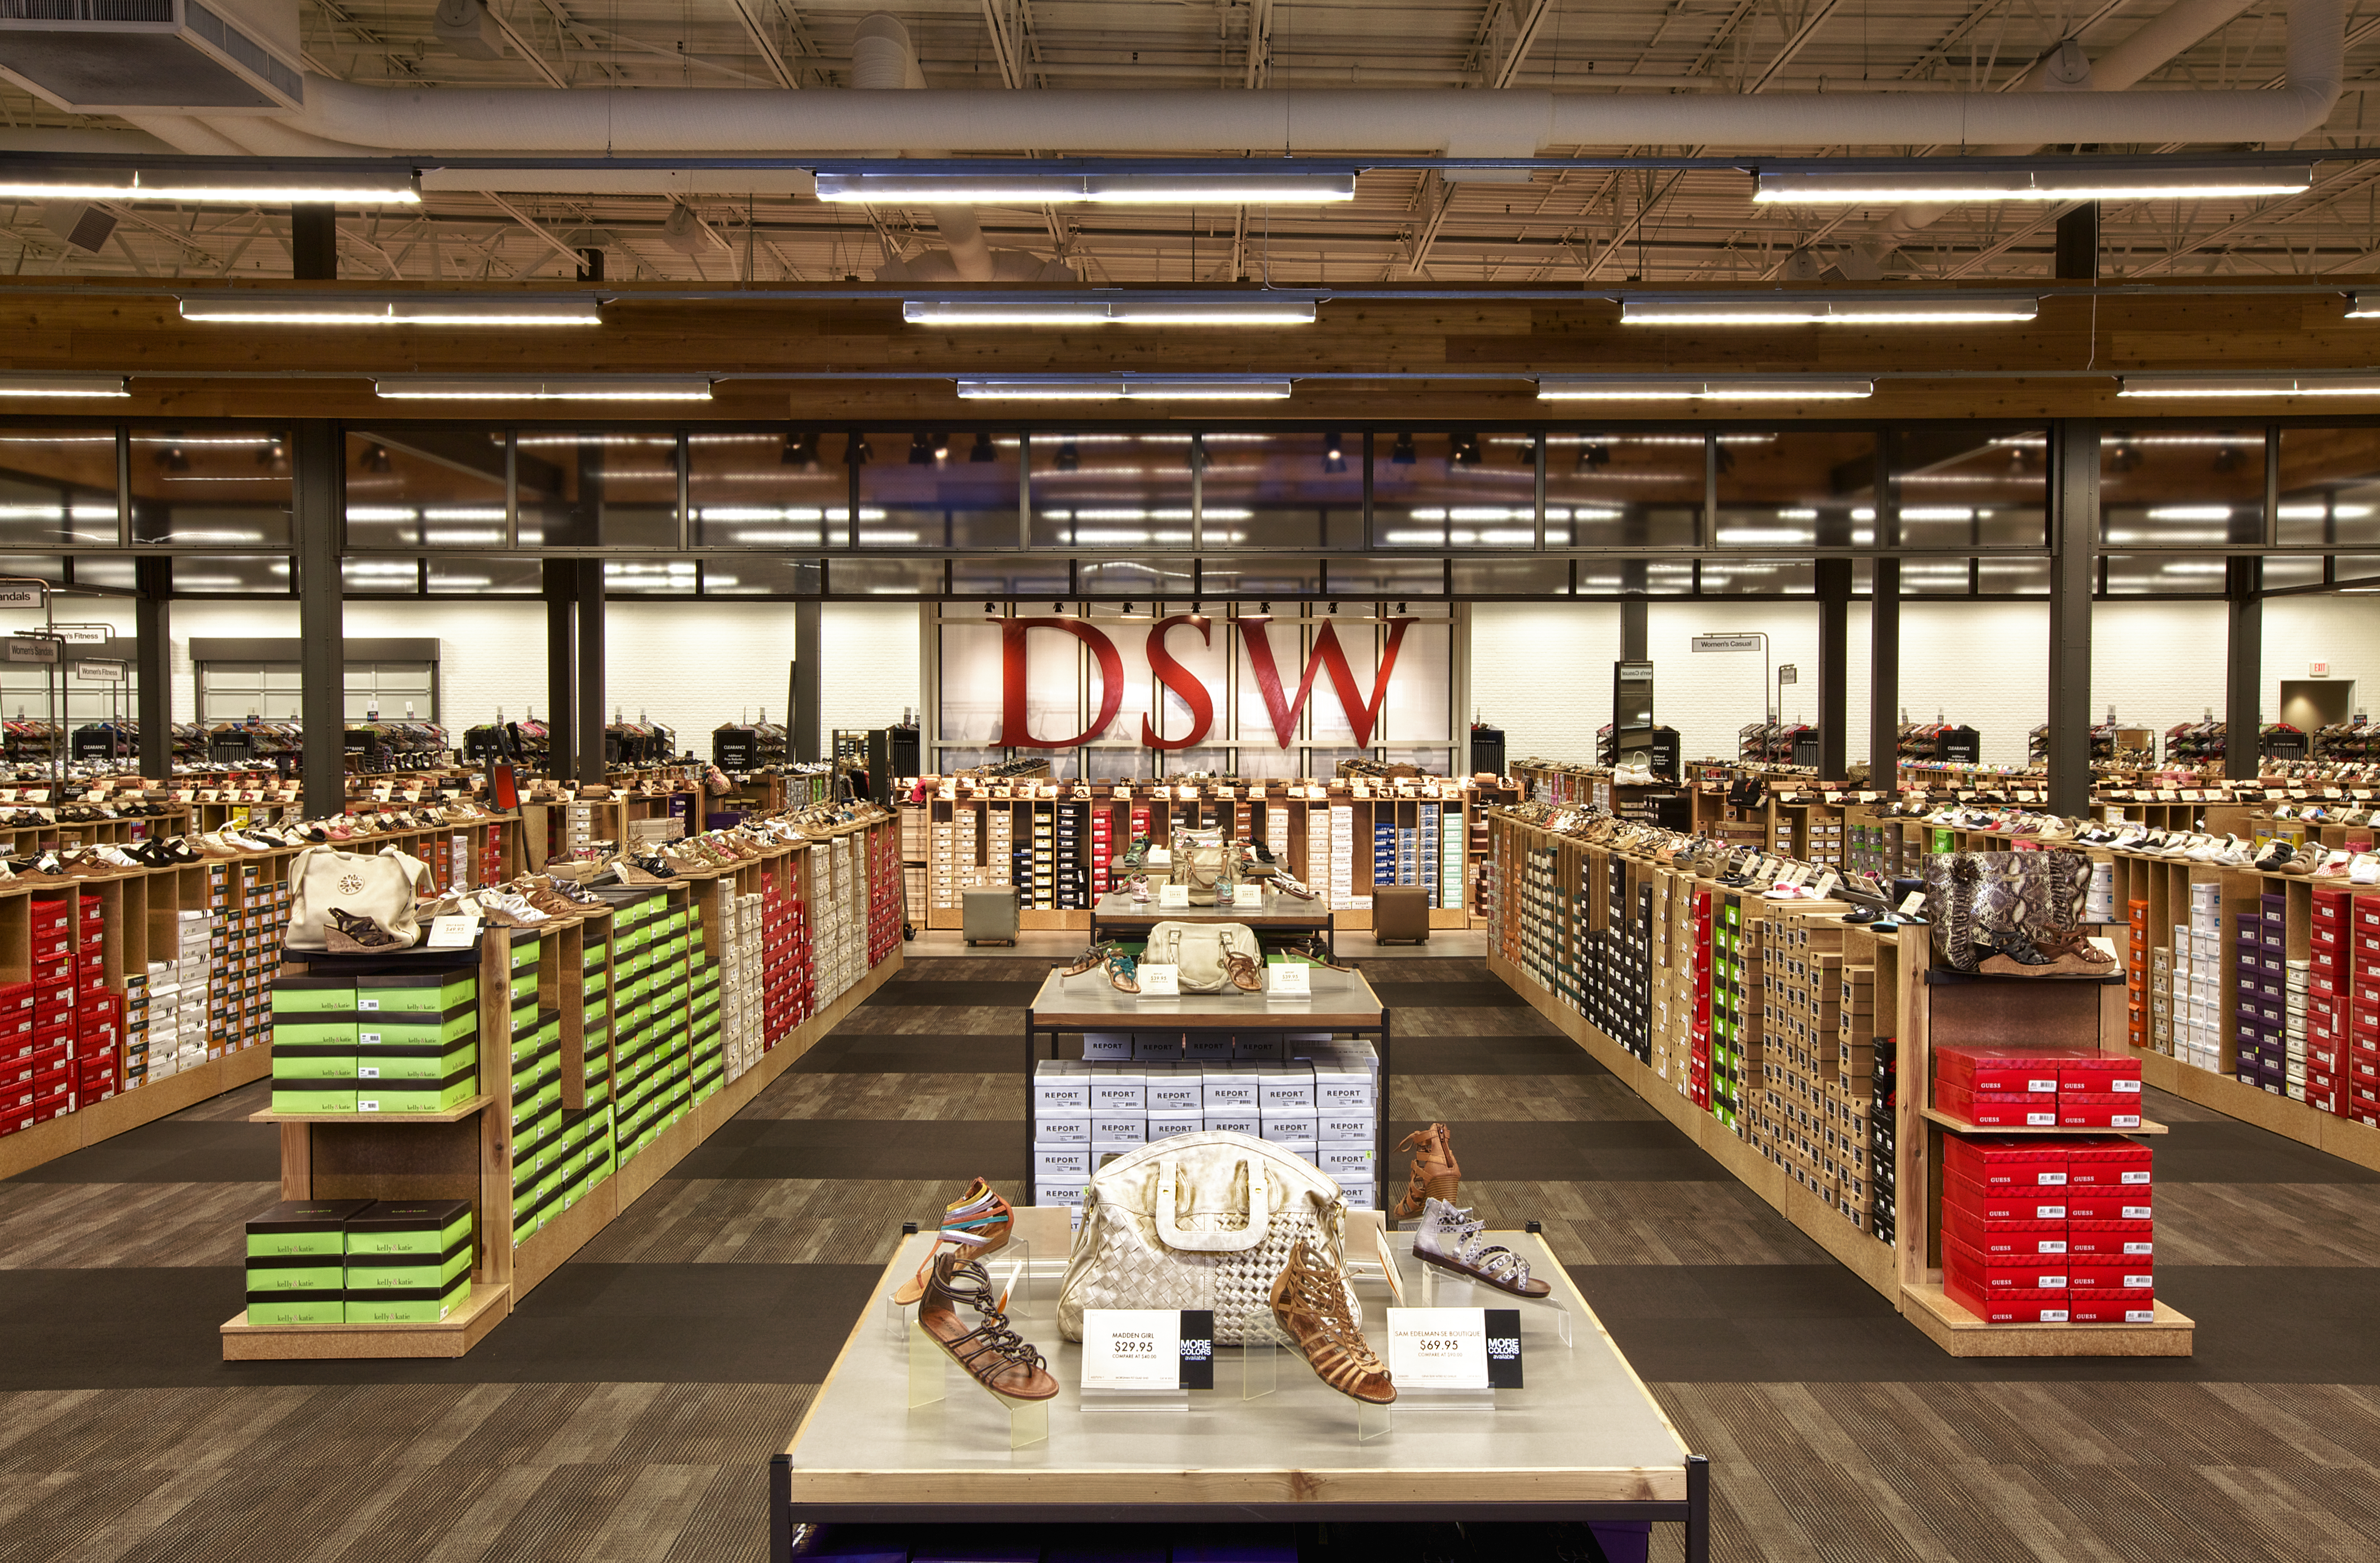 Interior of a DSW store.